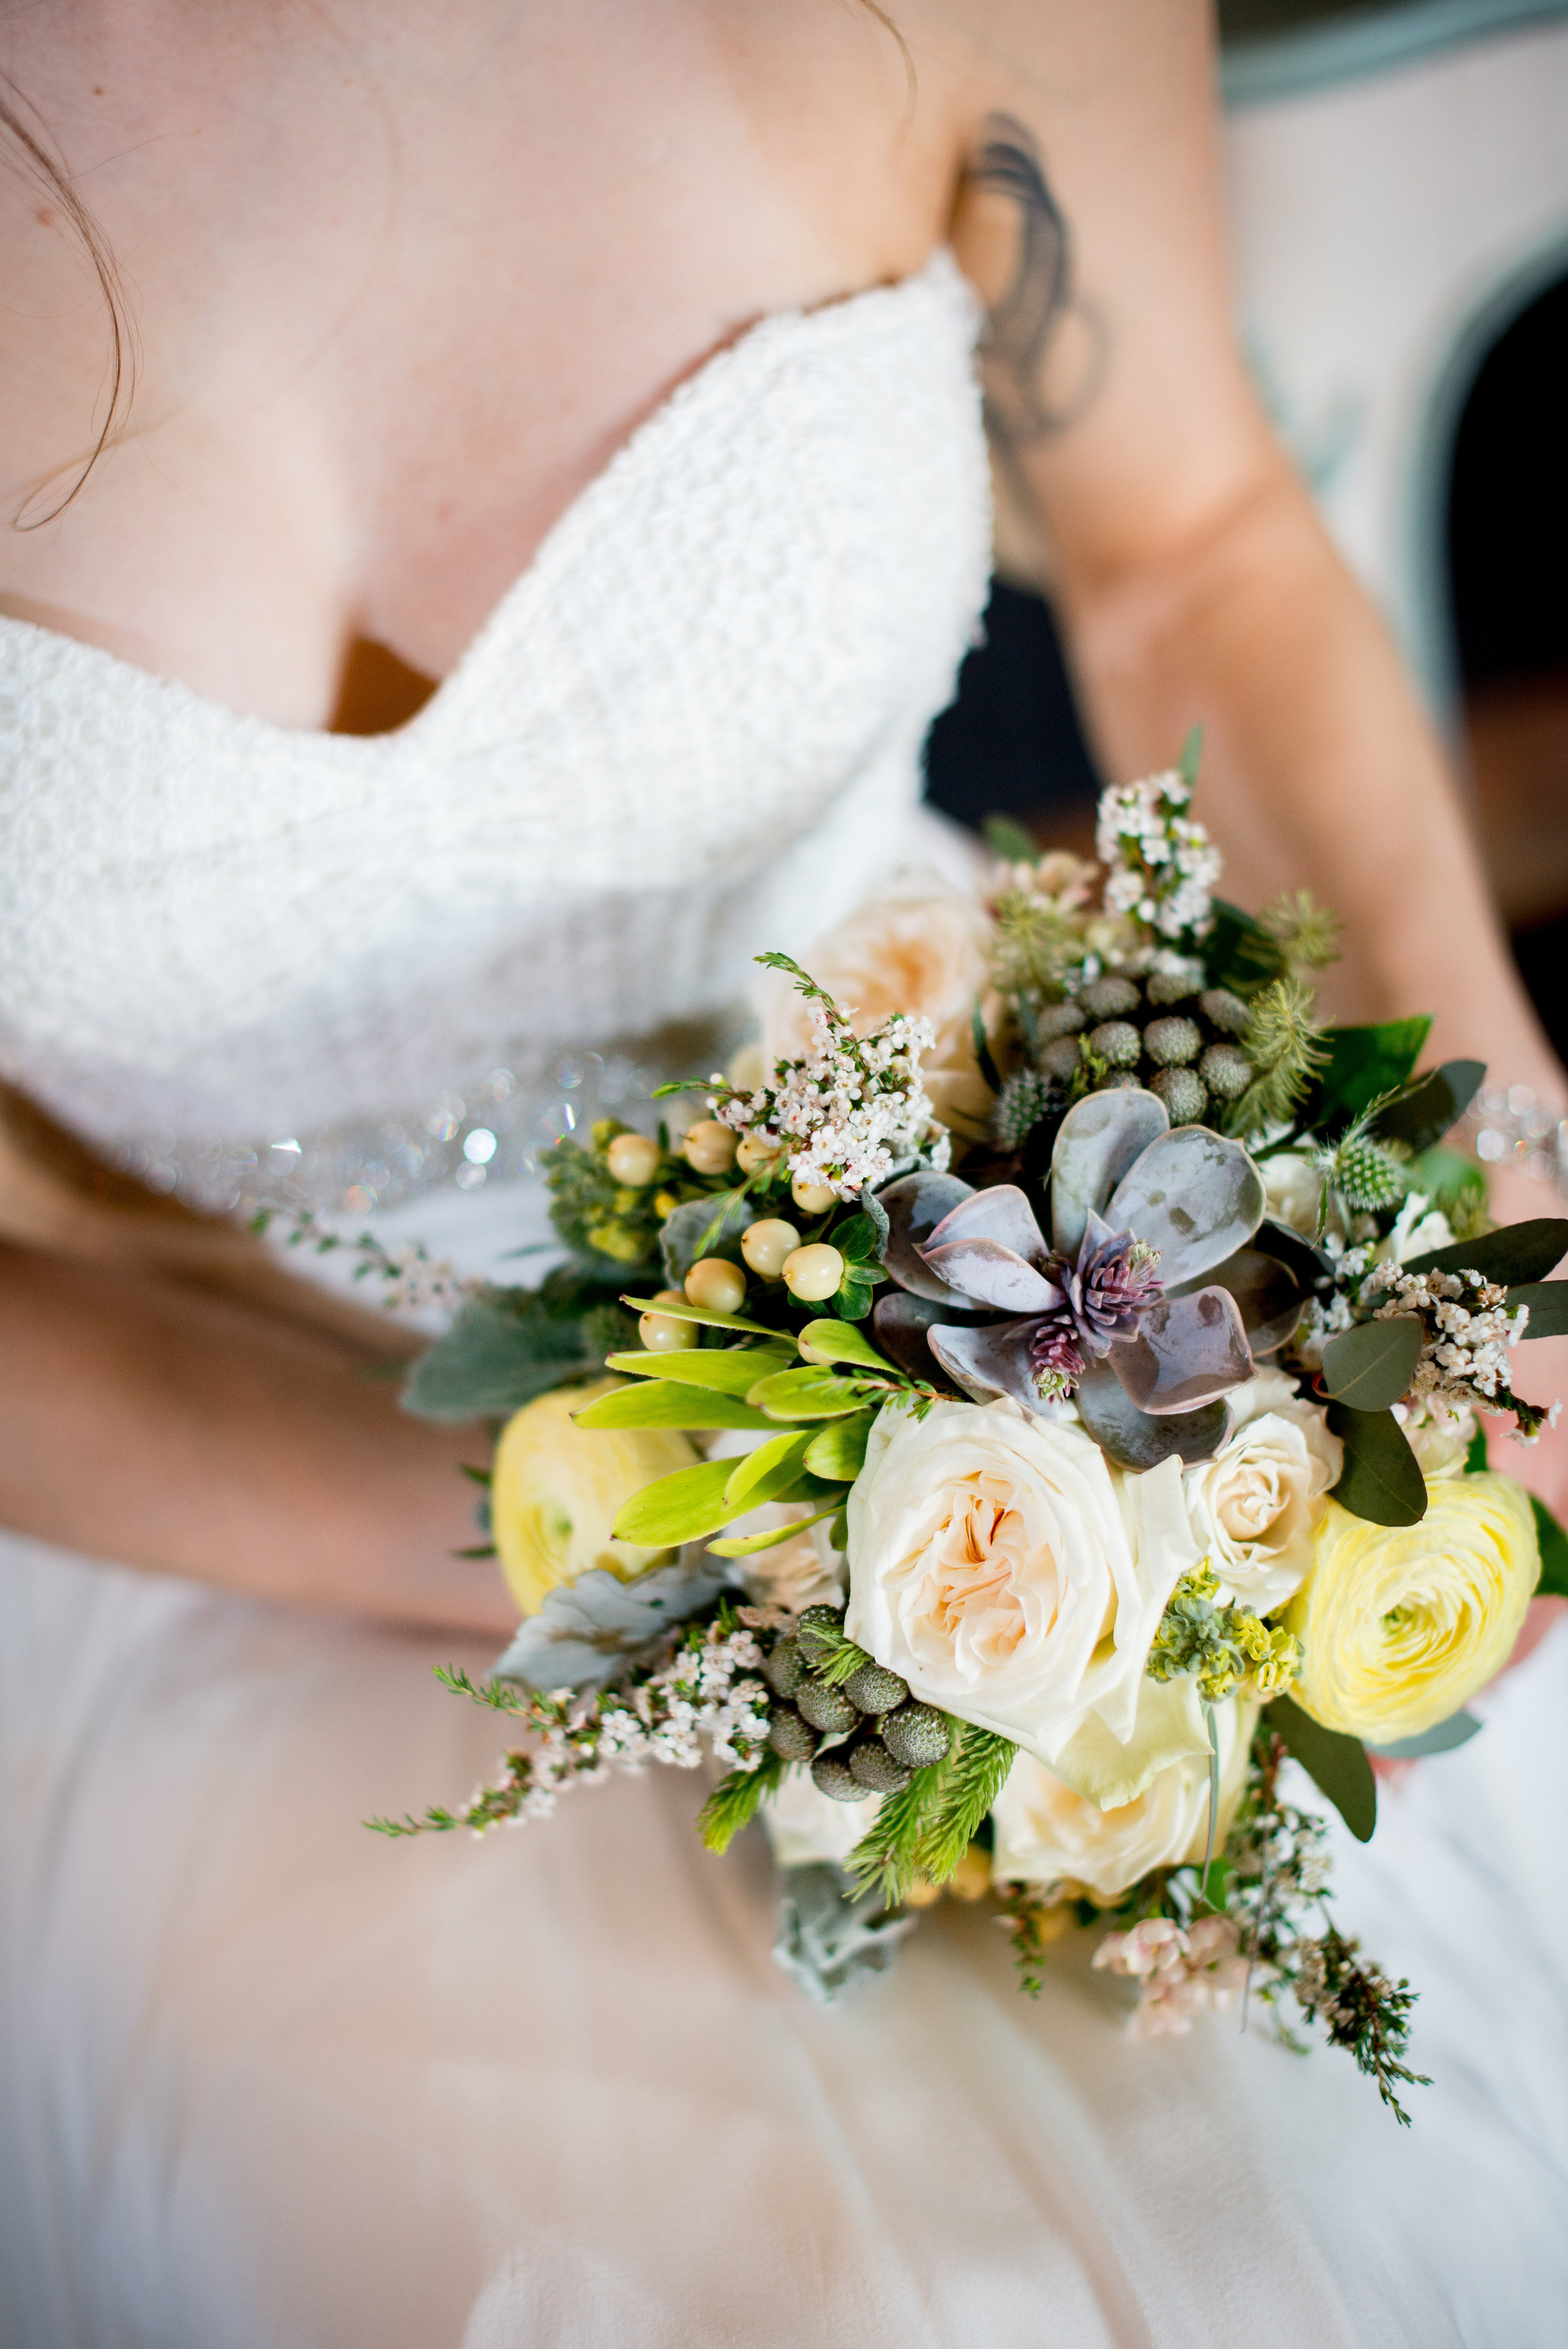 sweetwater brewing company wedding, atlanta wedding planners, beer inspired bridal bouquet with hops, succulents, garden roses, lambs ear and ranunculus